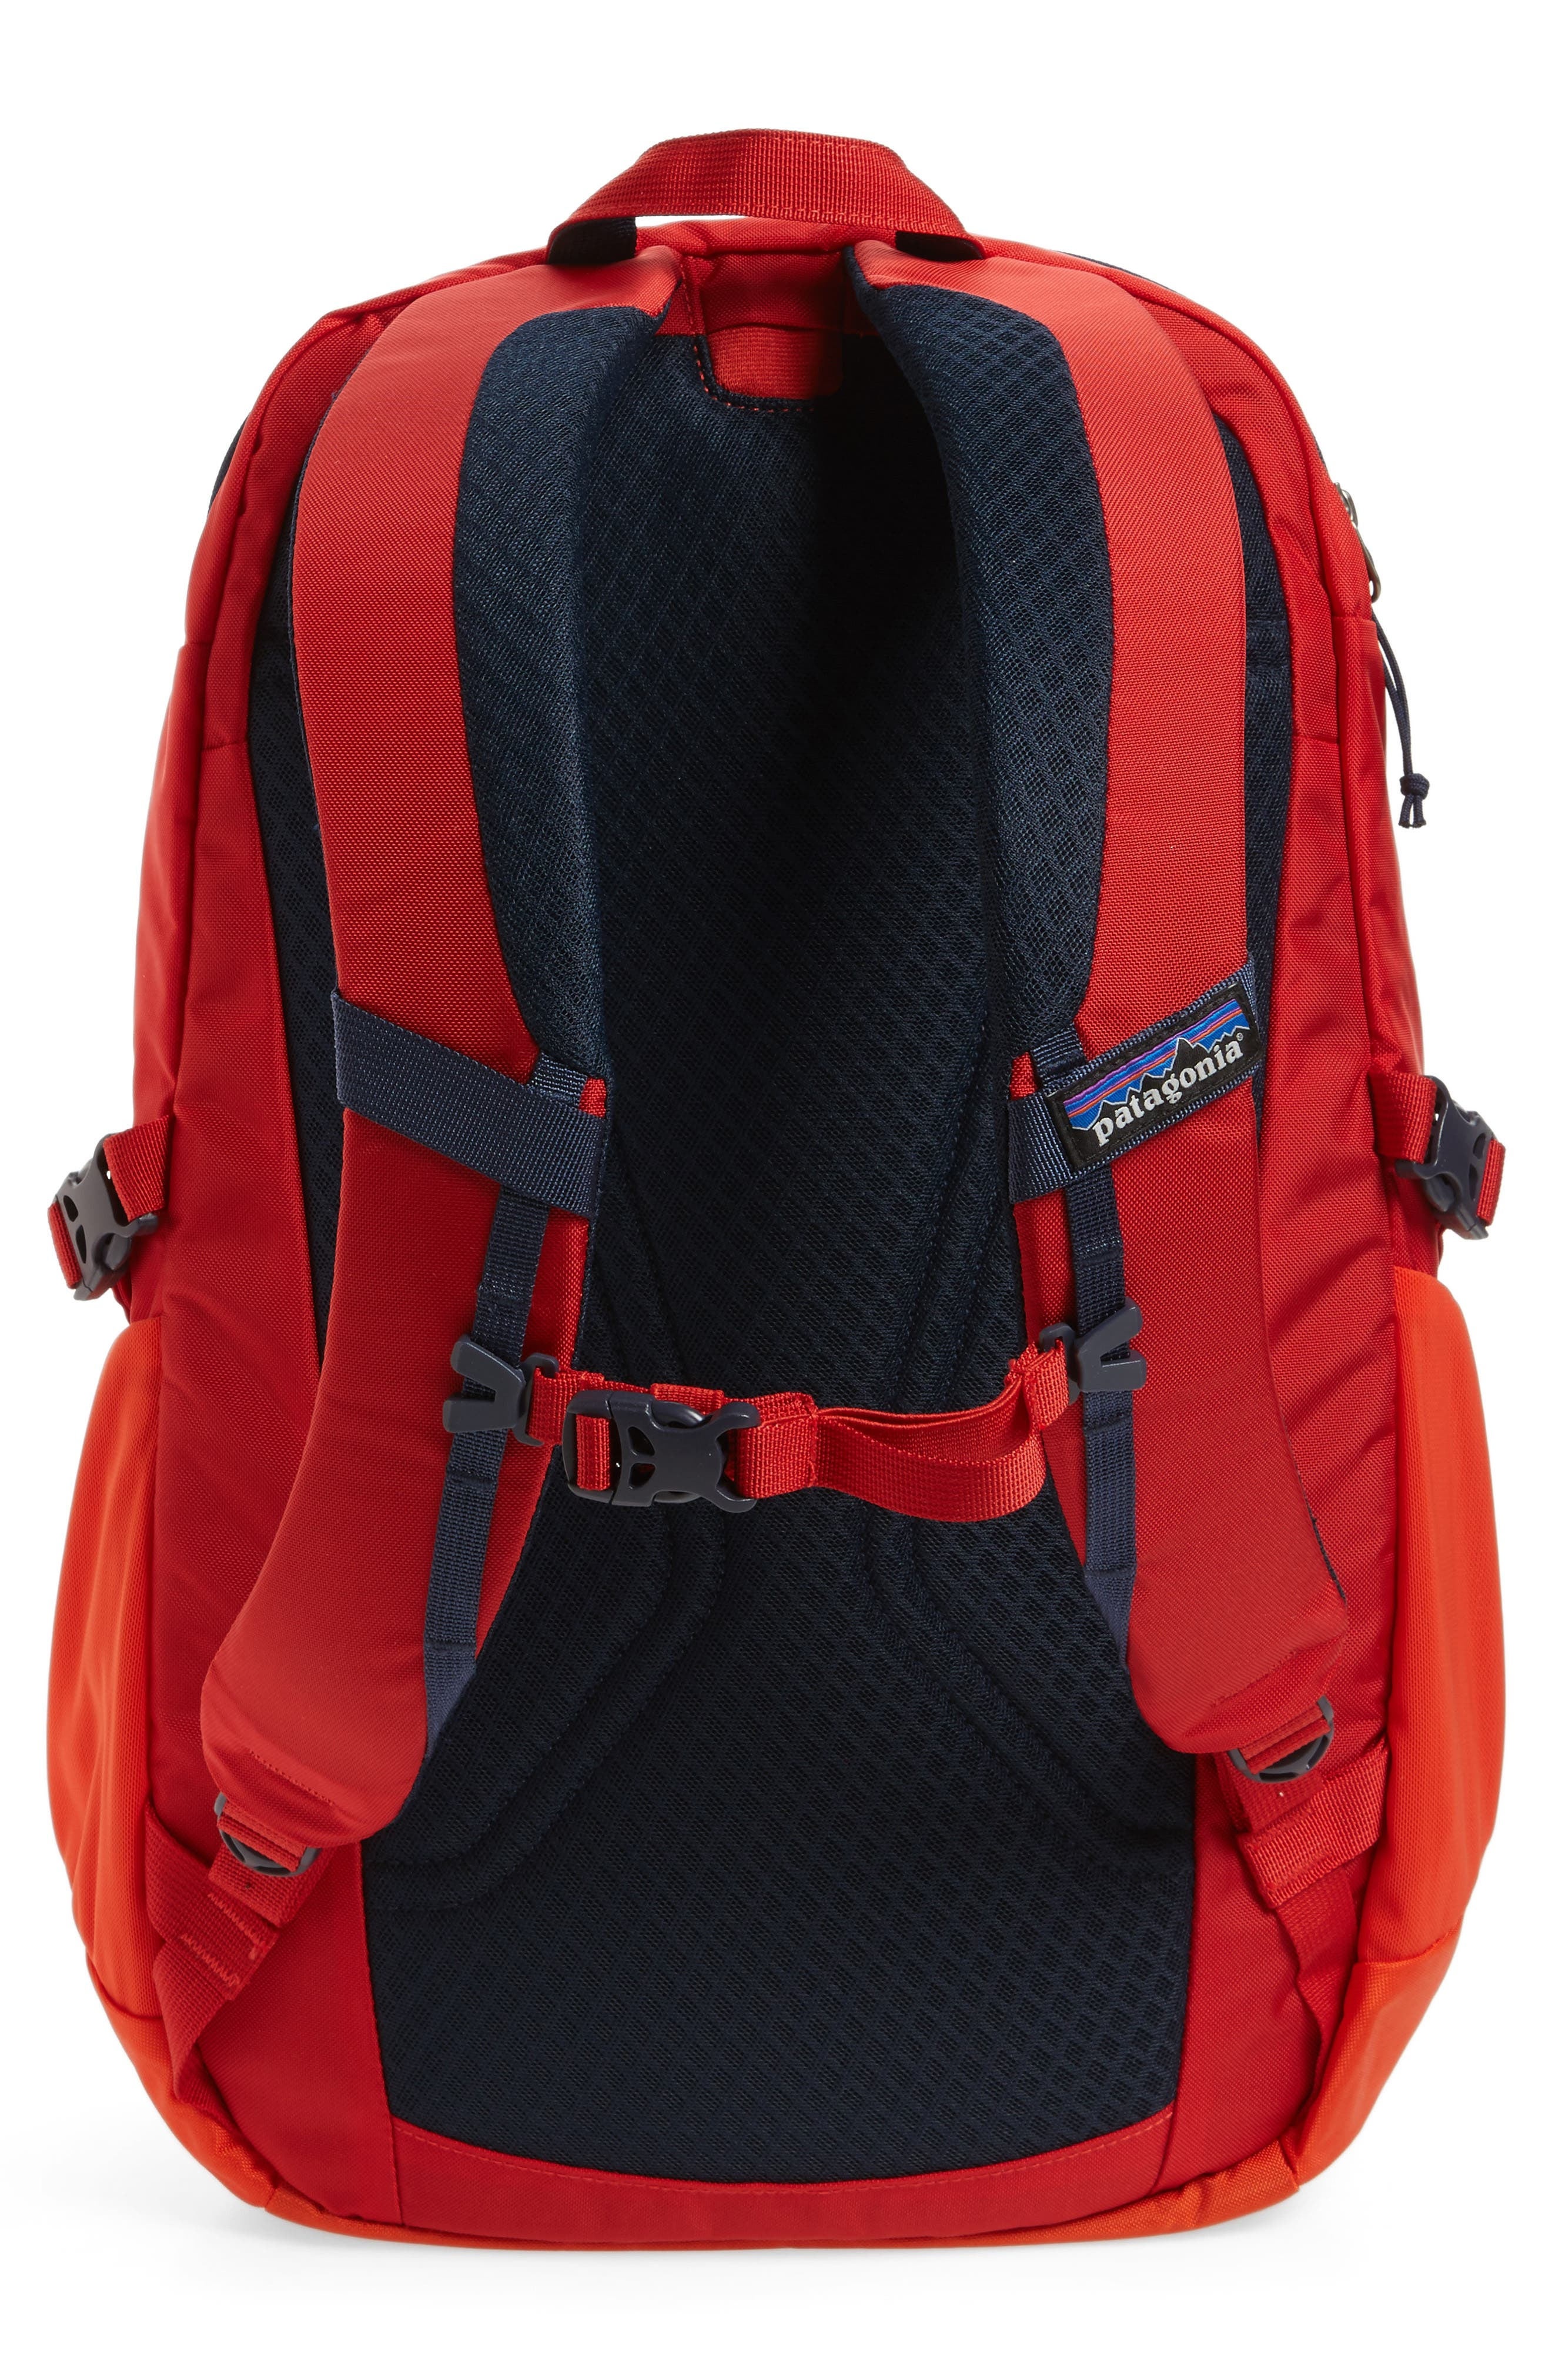 30L Chacabuco Backpack,                             Alternate thumbnail 3, color,                             Paintbrush Red